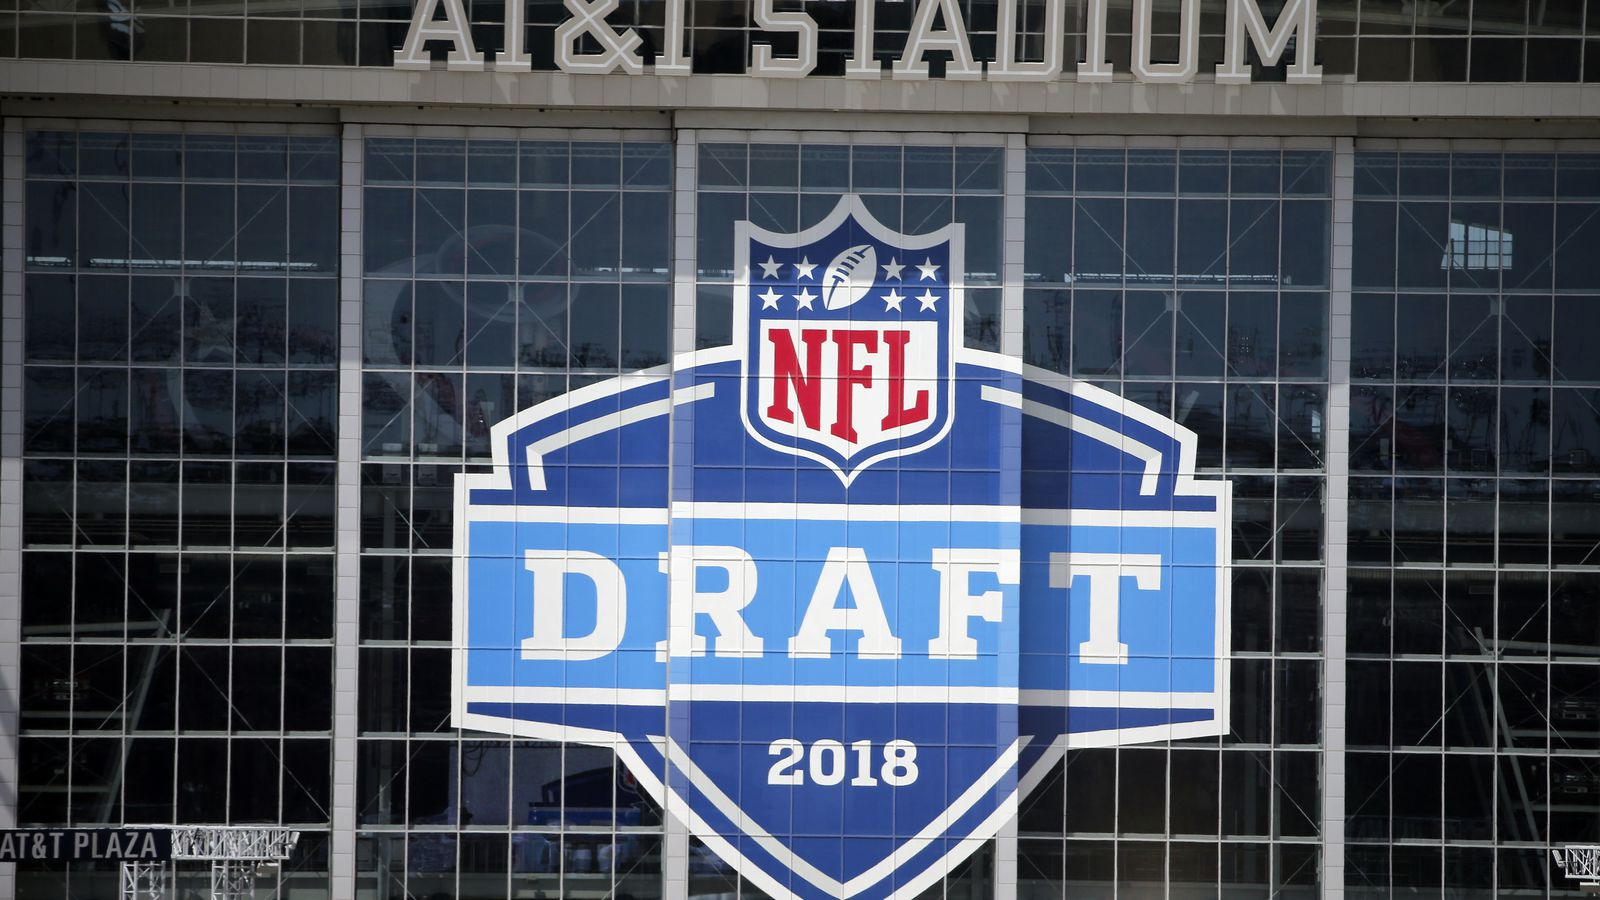 Nfl Draft Date Time Tv Schedule And Draft Order For The April 26 28 Draft